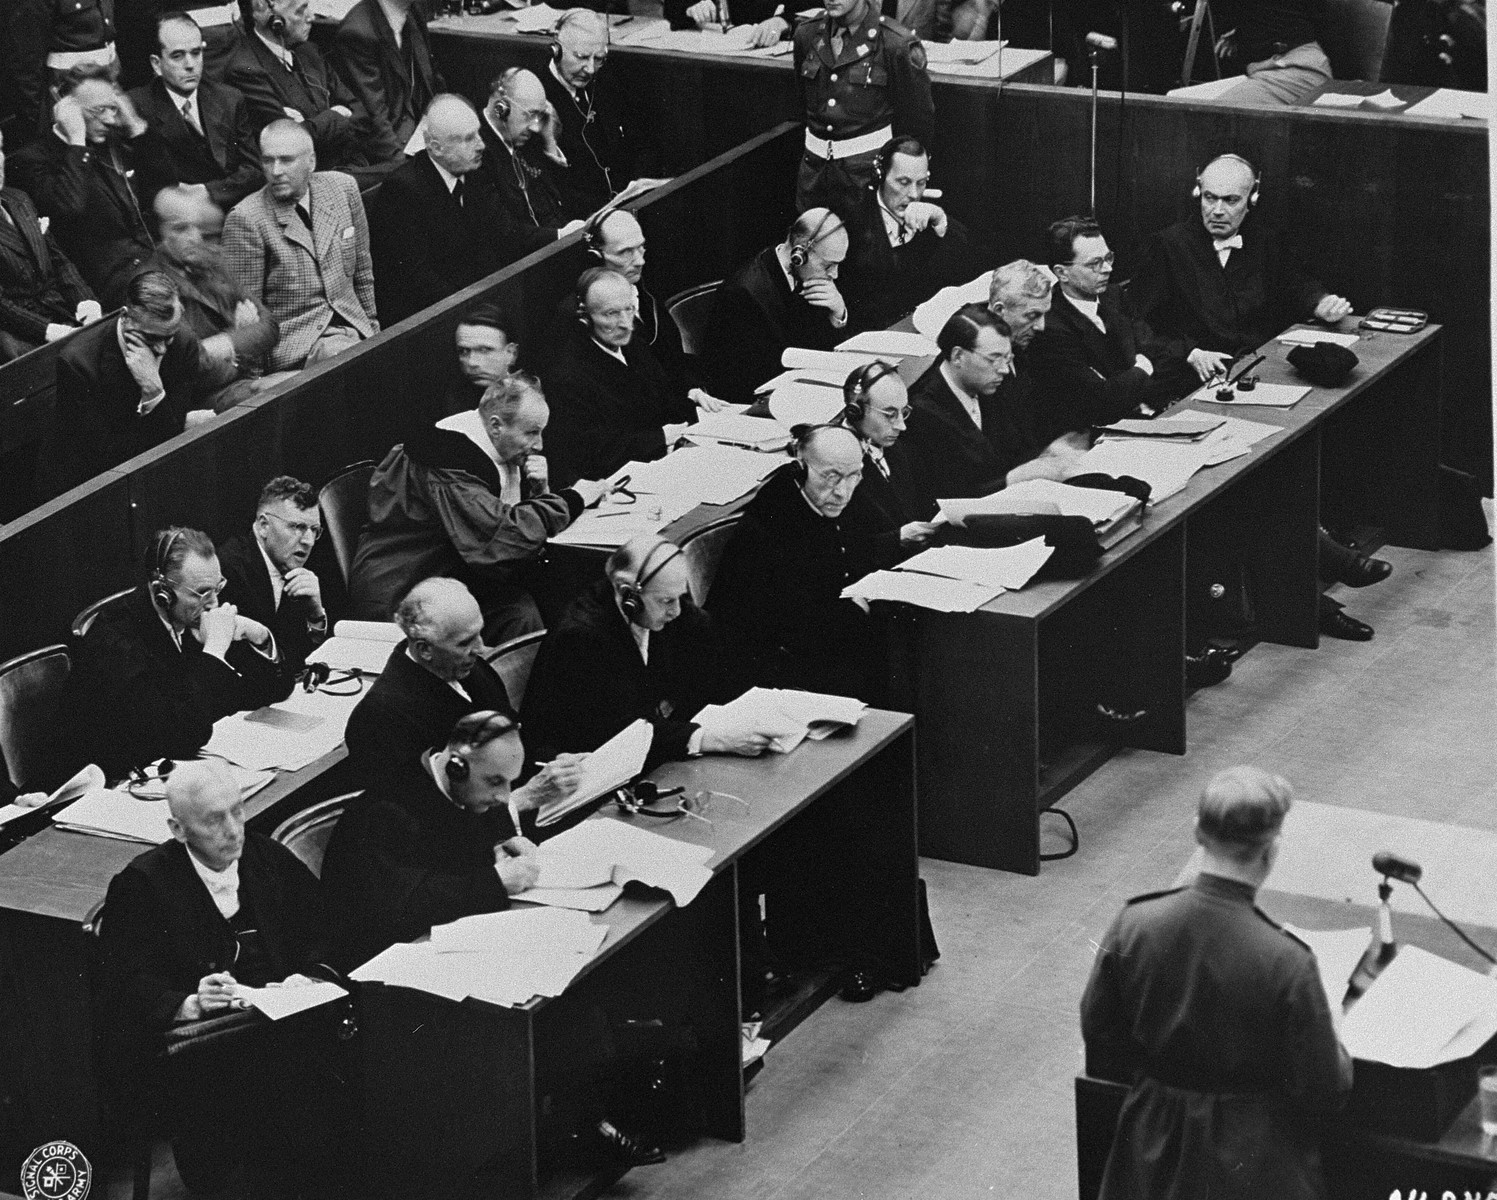 The defense counsellors hear the reading of the indictment against the defendants on the first day of the International Military Tribunal trial of war criminals at Nuremberg.